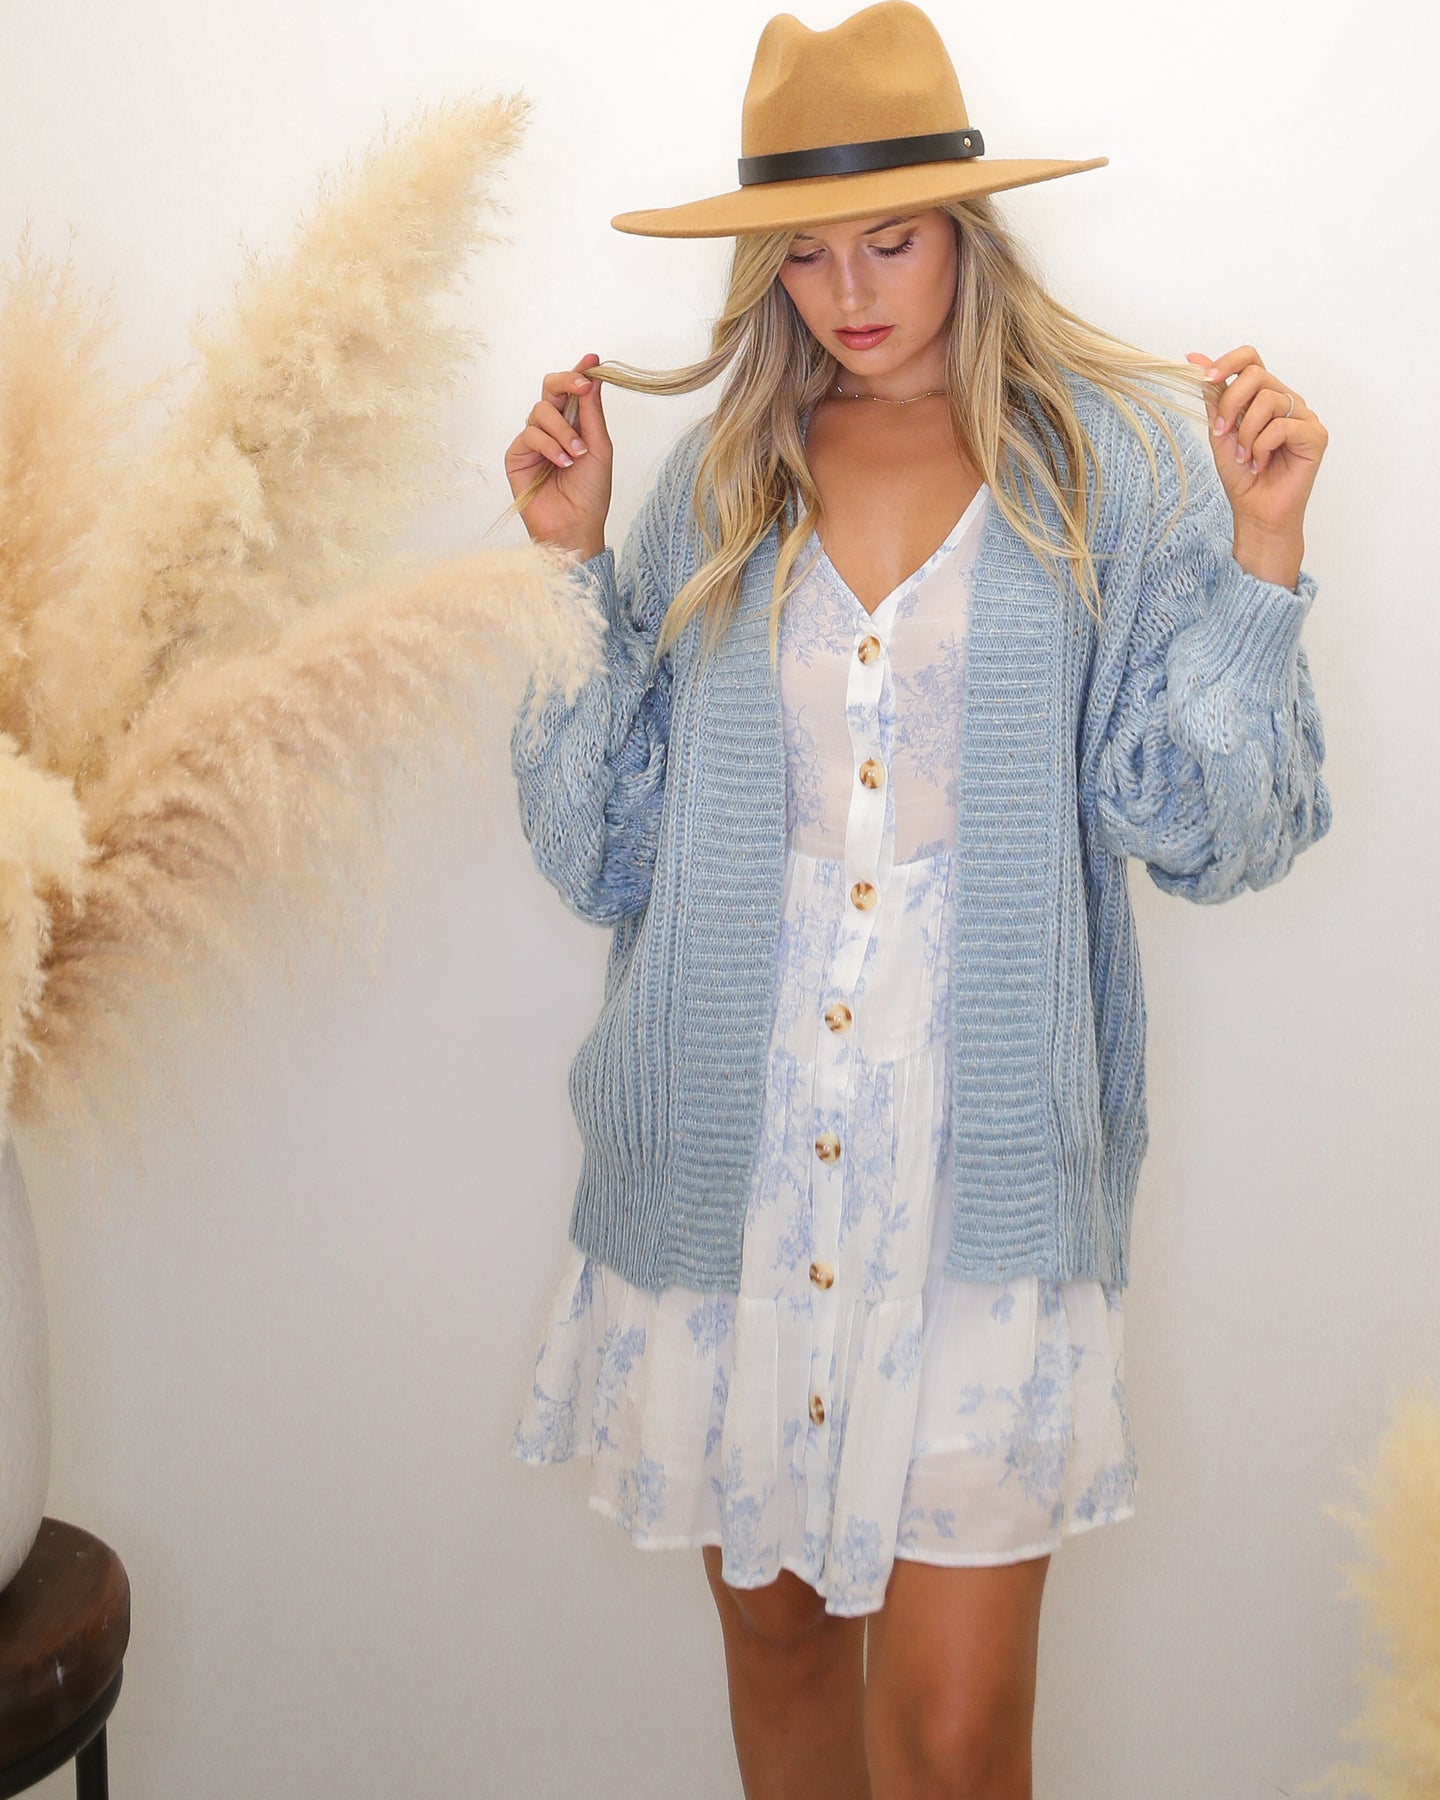 Pure Magic Bubble Sleeve Cardigan - Finding July